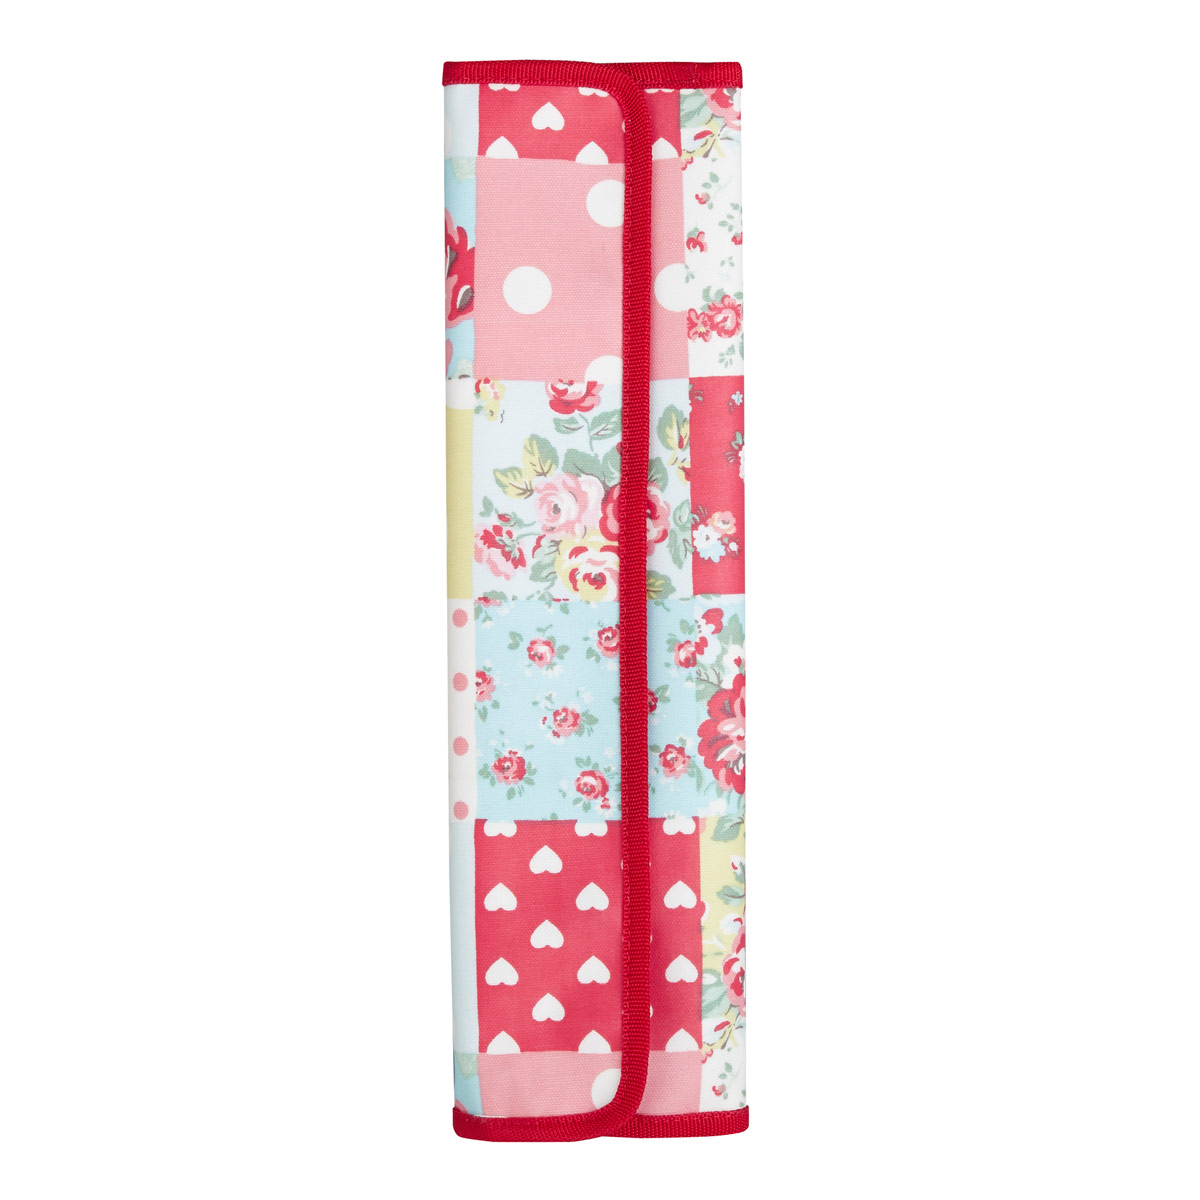 Cath Kidston Patchwork Knitting Needle Roll   Penny Royal Gifts